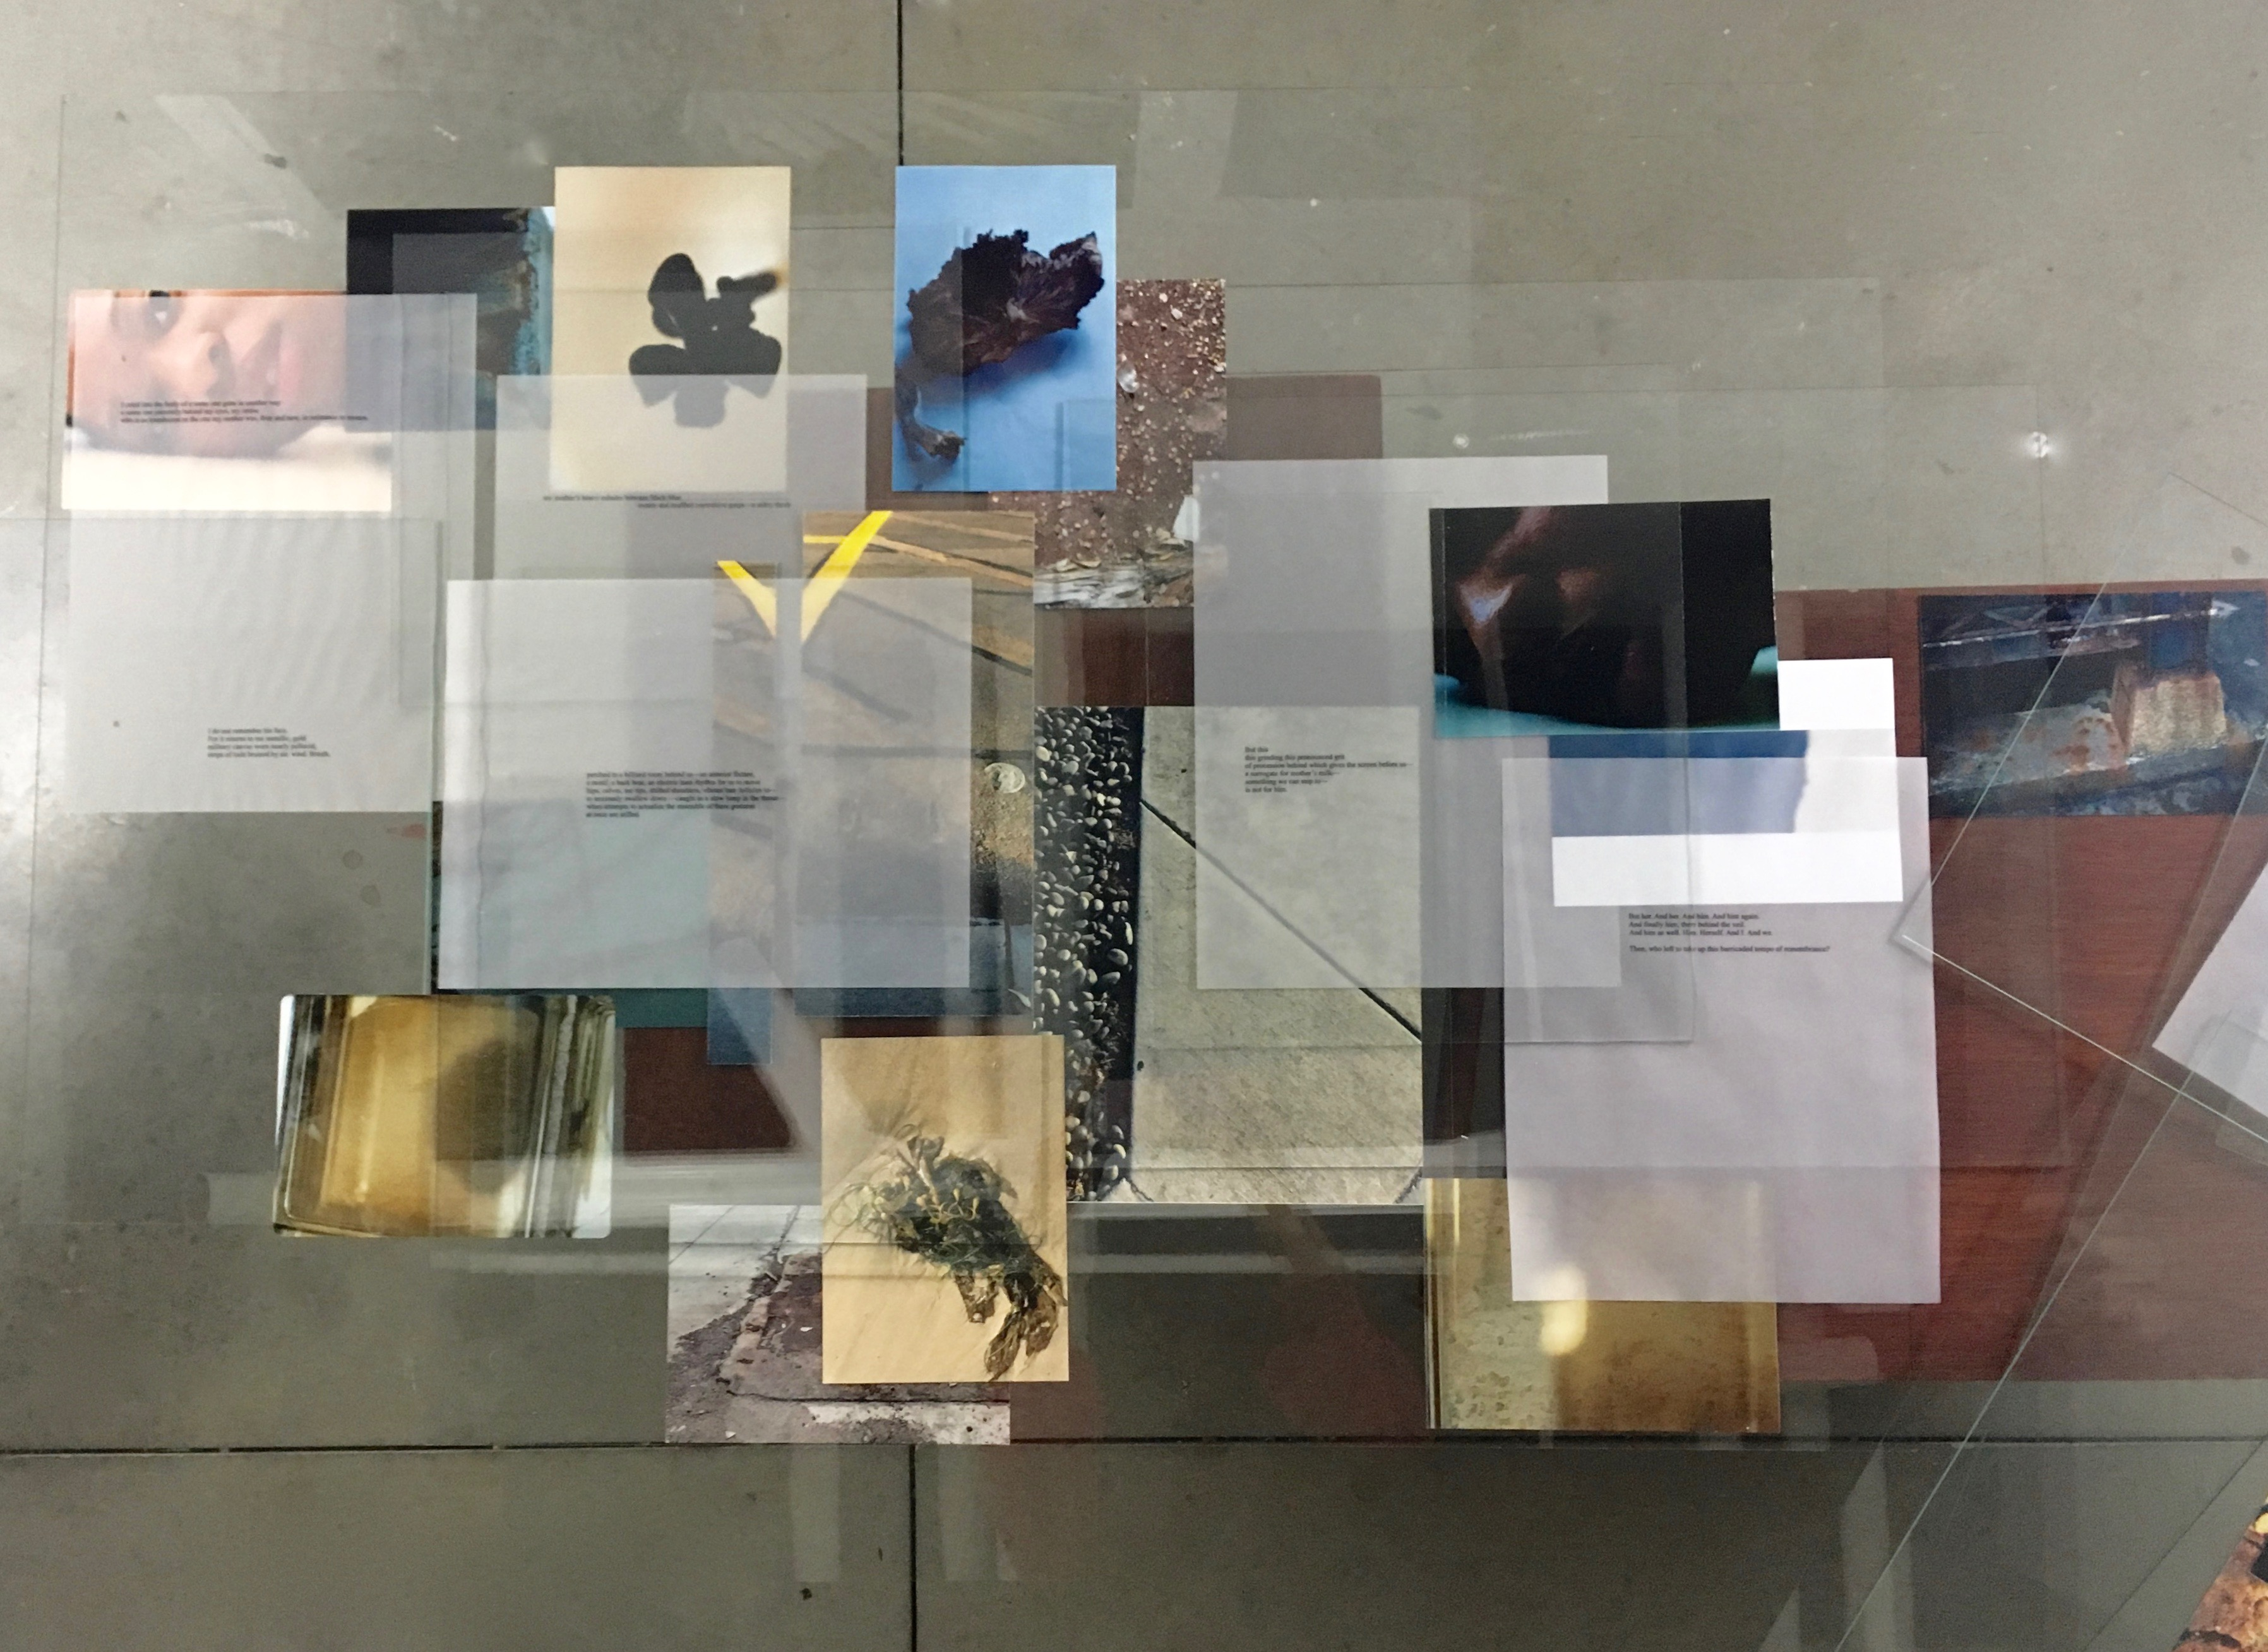 Charisse Pearlina Weston, The immaterial imaginary of rhythm moistened black salt into translucence, 2016, replacement frame, glass, inkjet photographs, text on vellum, wood sculpture, dimensions variable